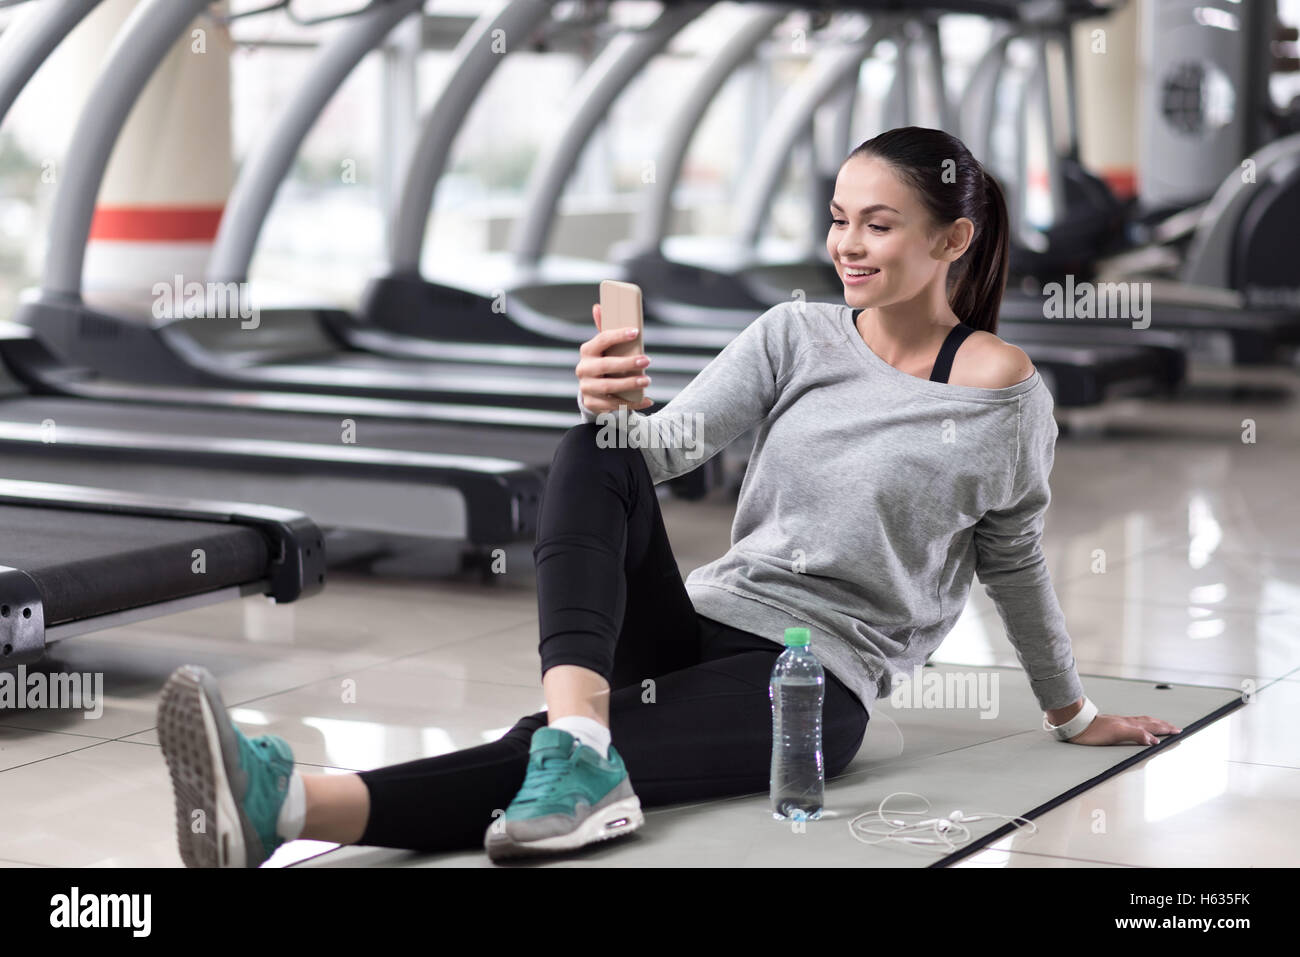 Beautiful girl using smartphone in a gym - Stock Image